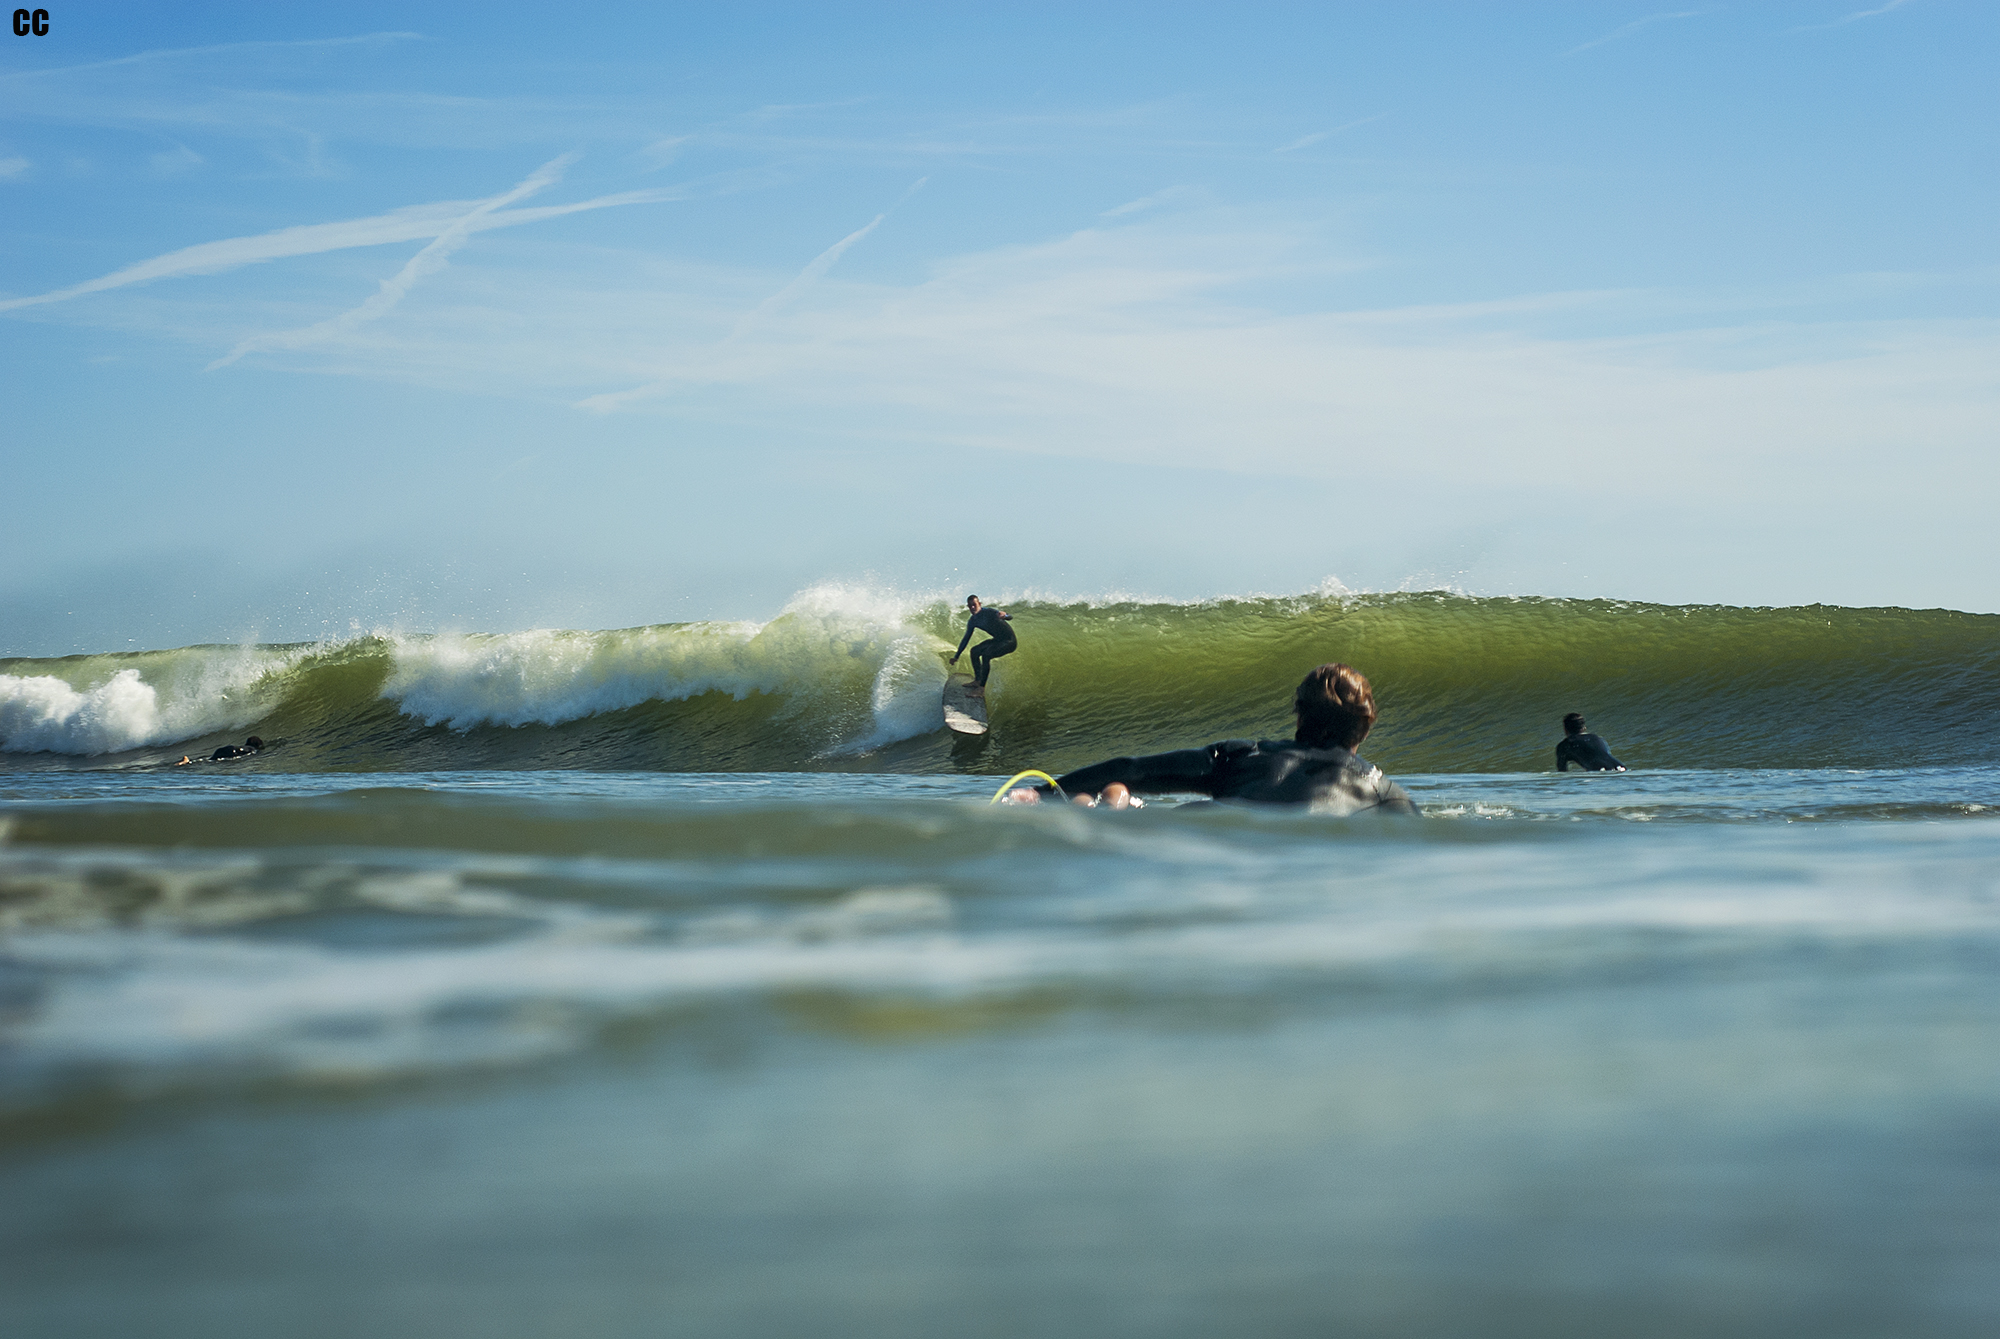 TJ Weedman deep on a long one. Don't forget TJ is 6'5.